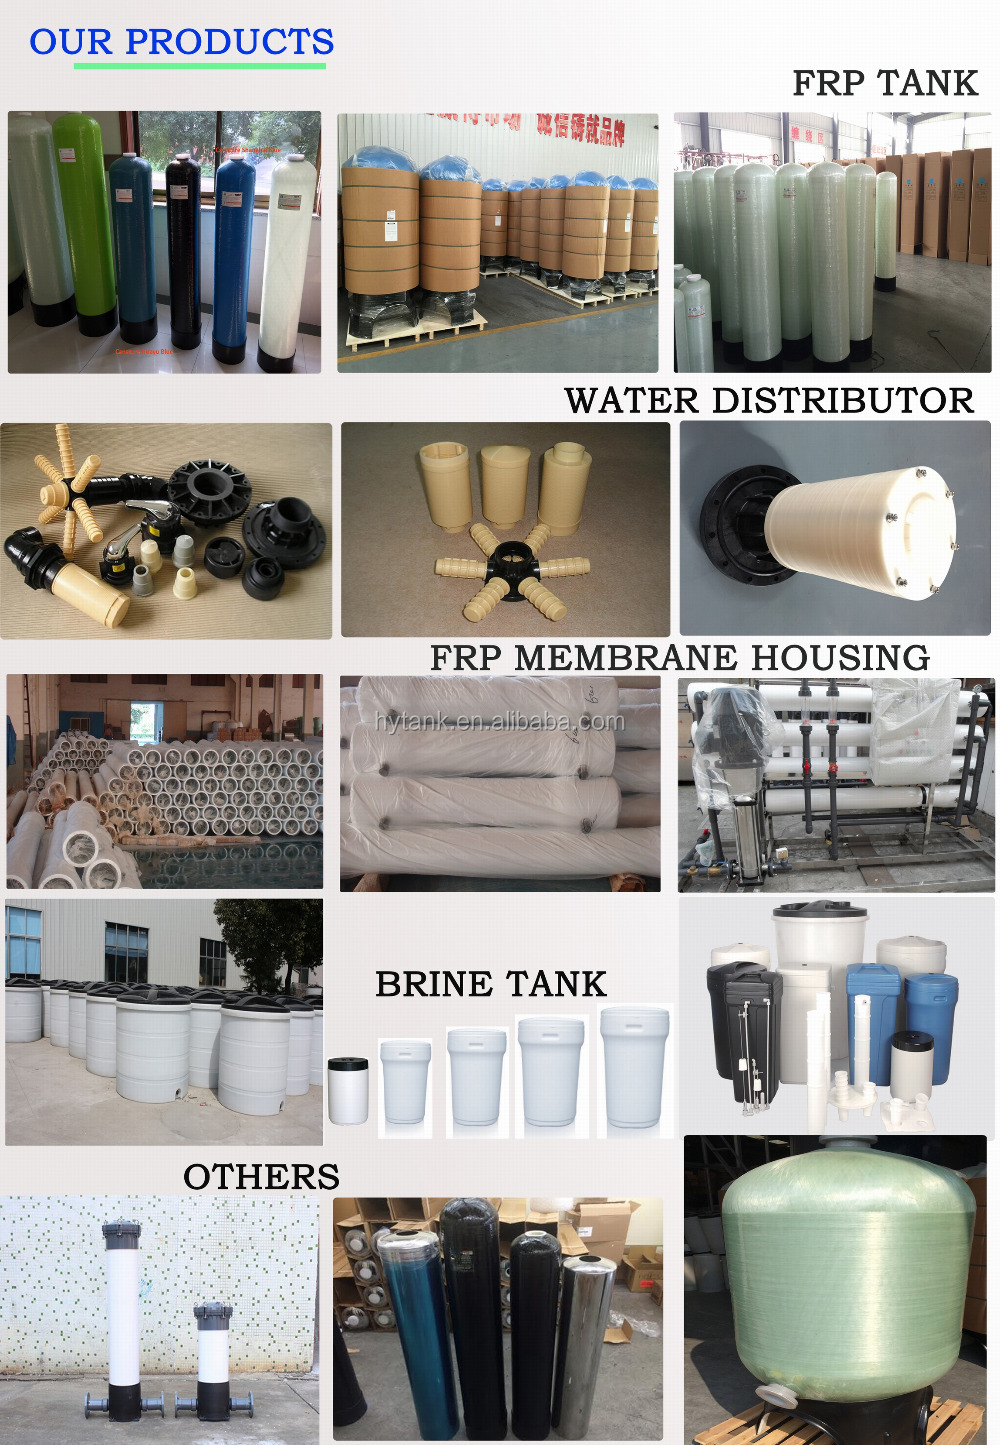 Water distributor for filter tanks